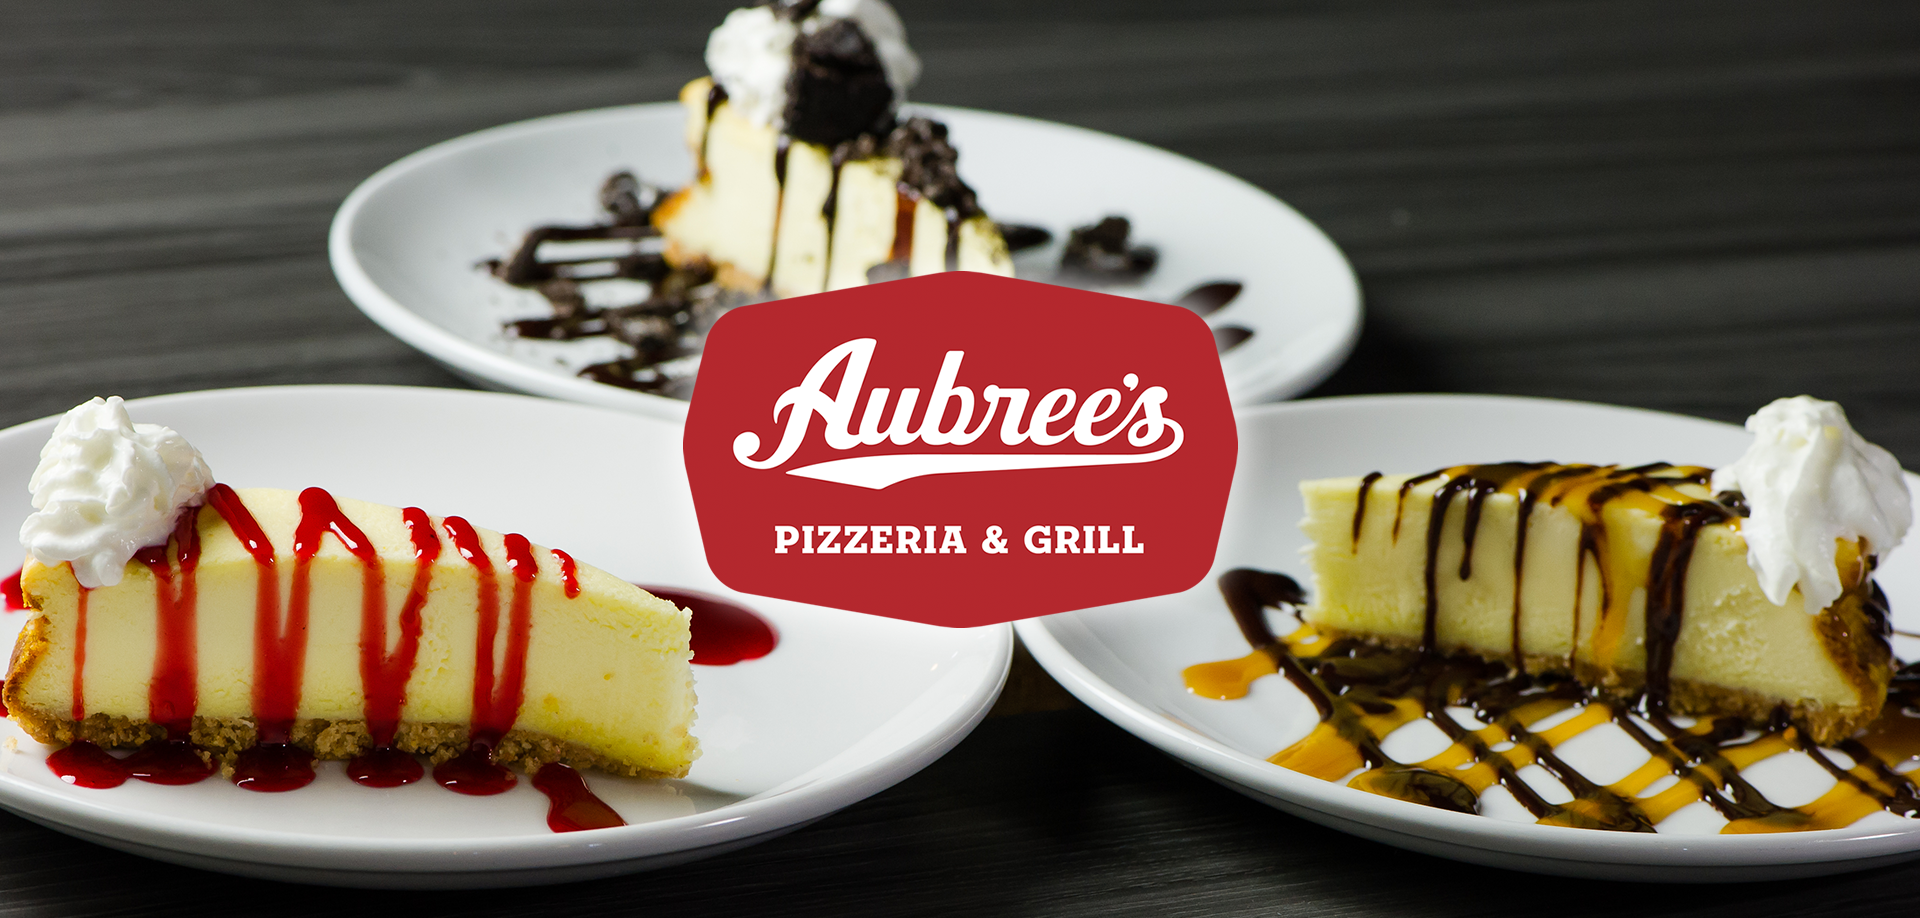 aubree's pizzeria and grill